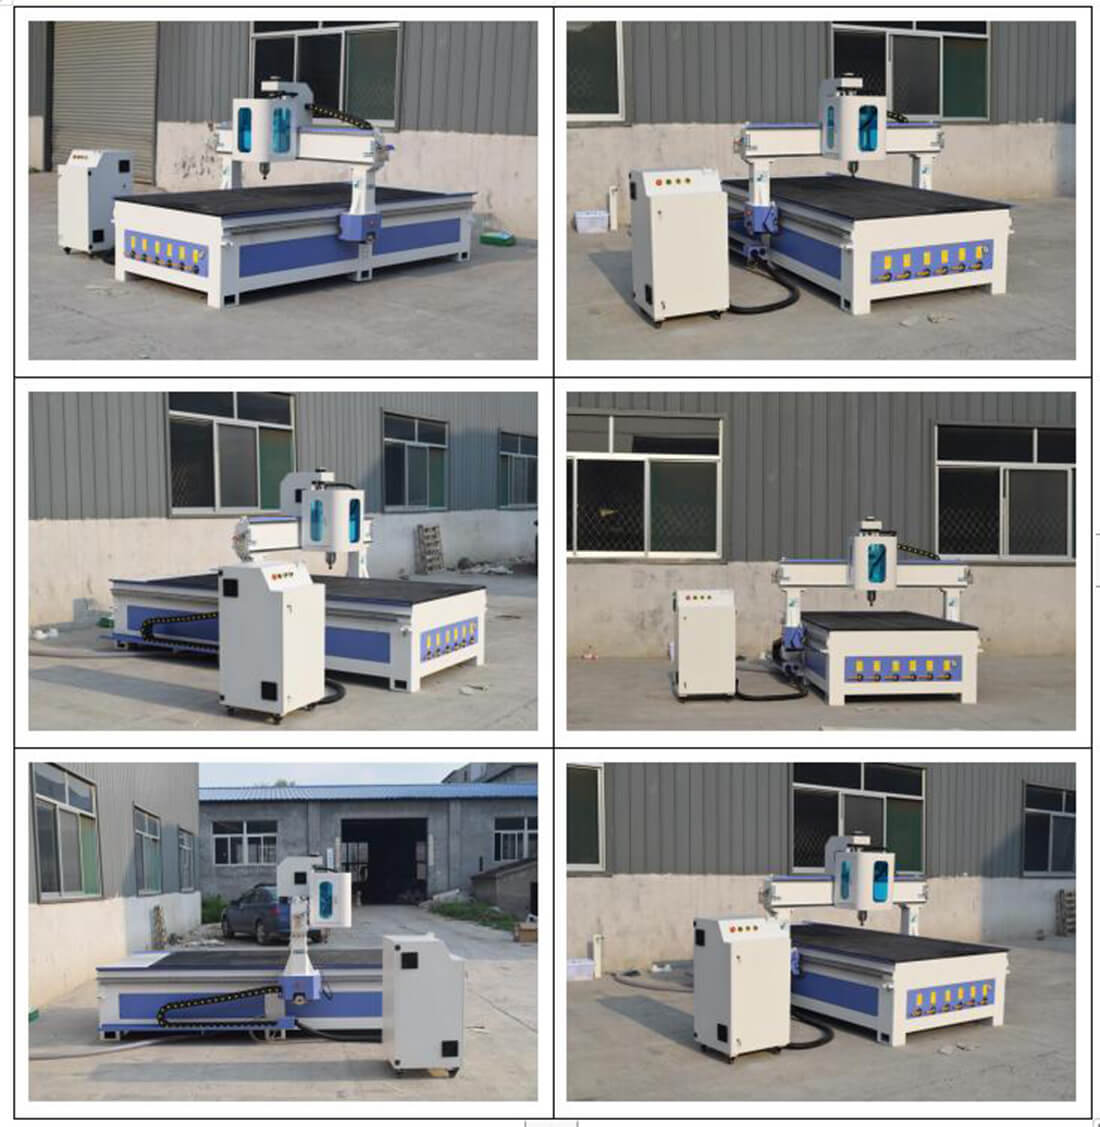 cnc router machine for woodworking (1)